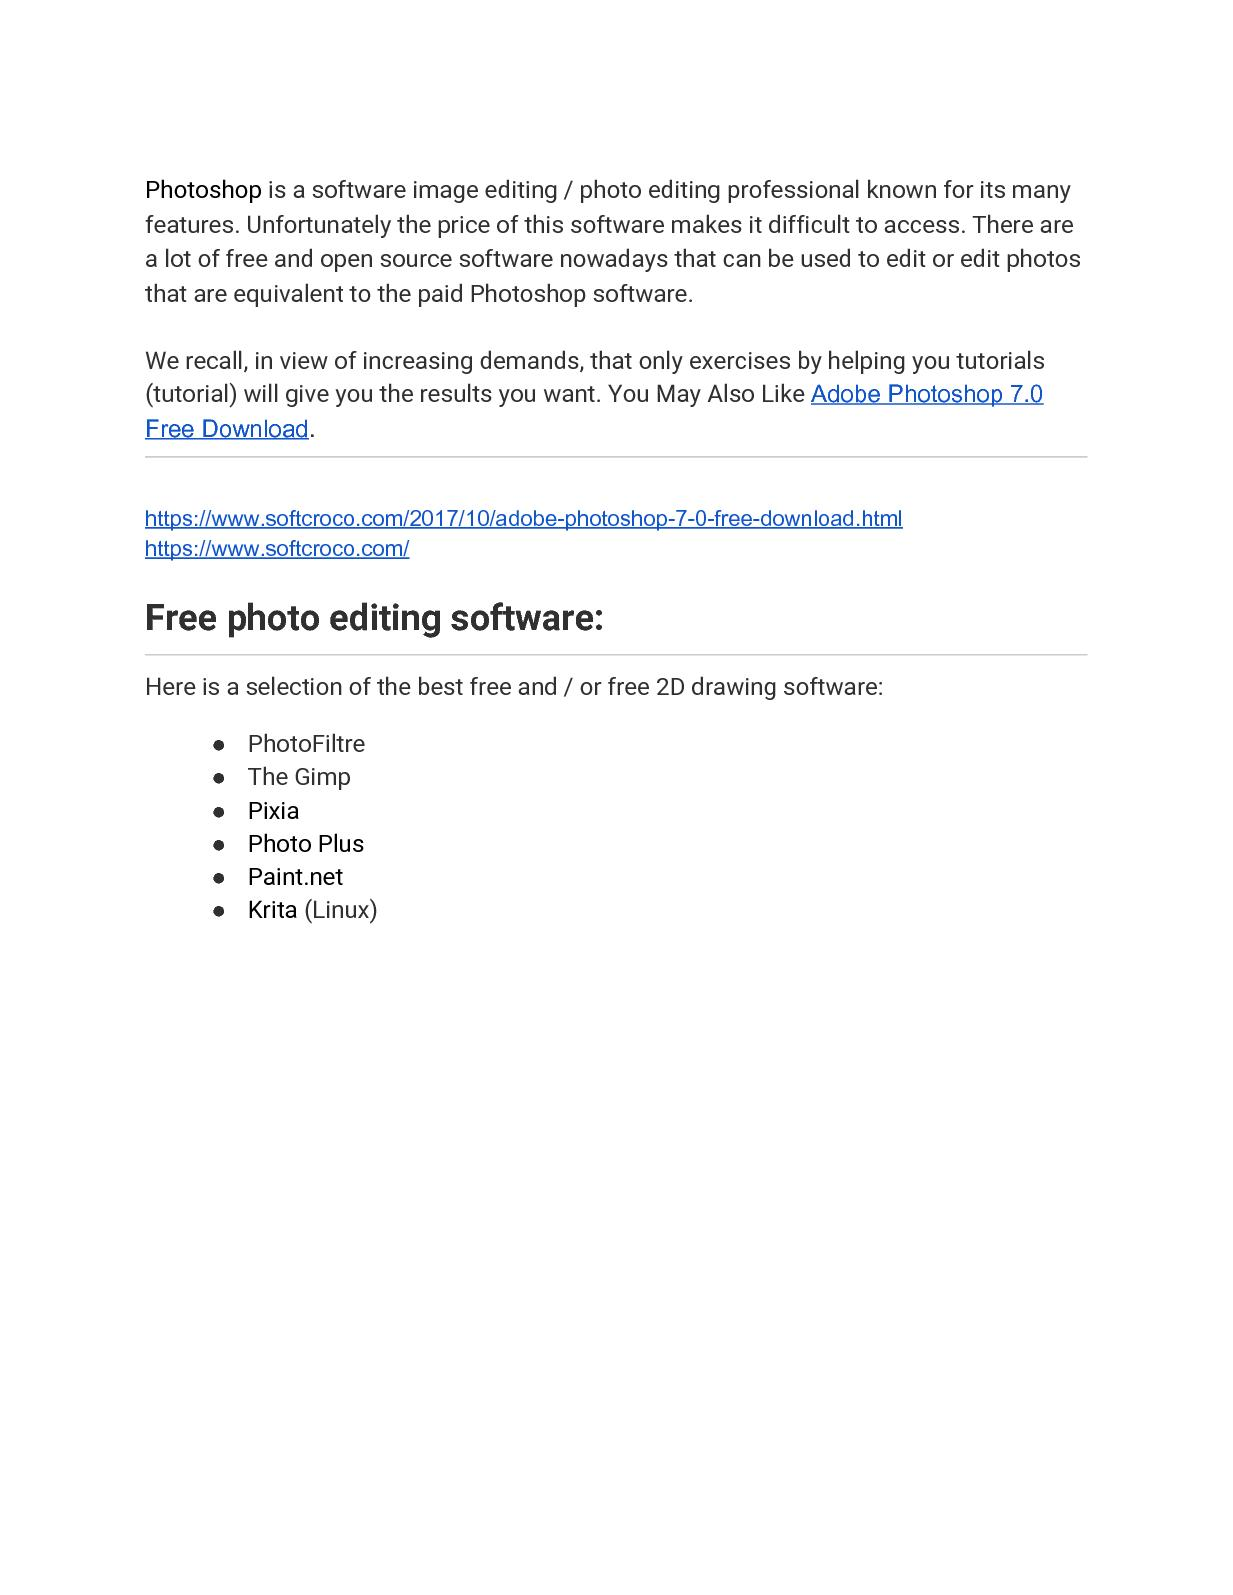 free download adobe photoshop 7.0 for windows 10